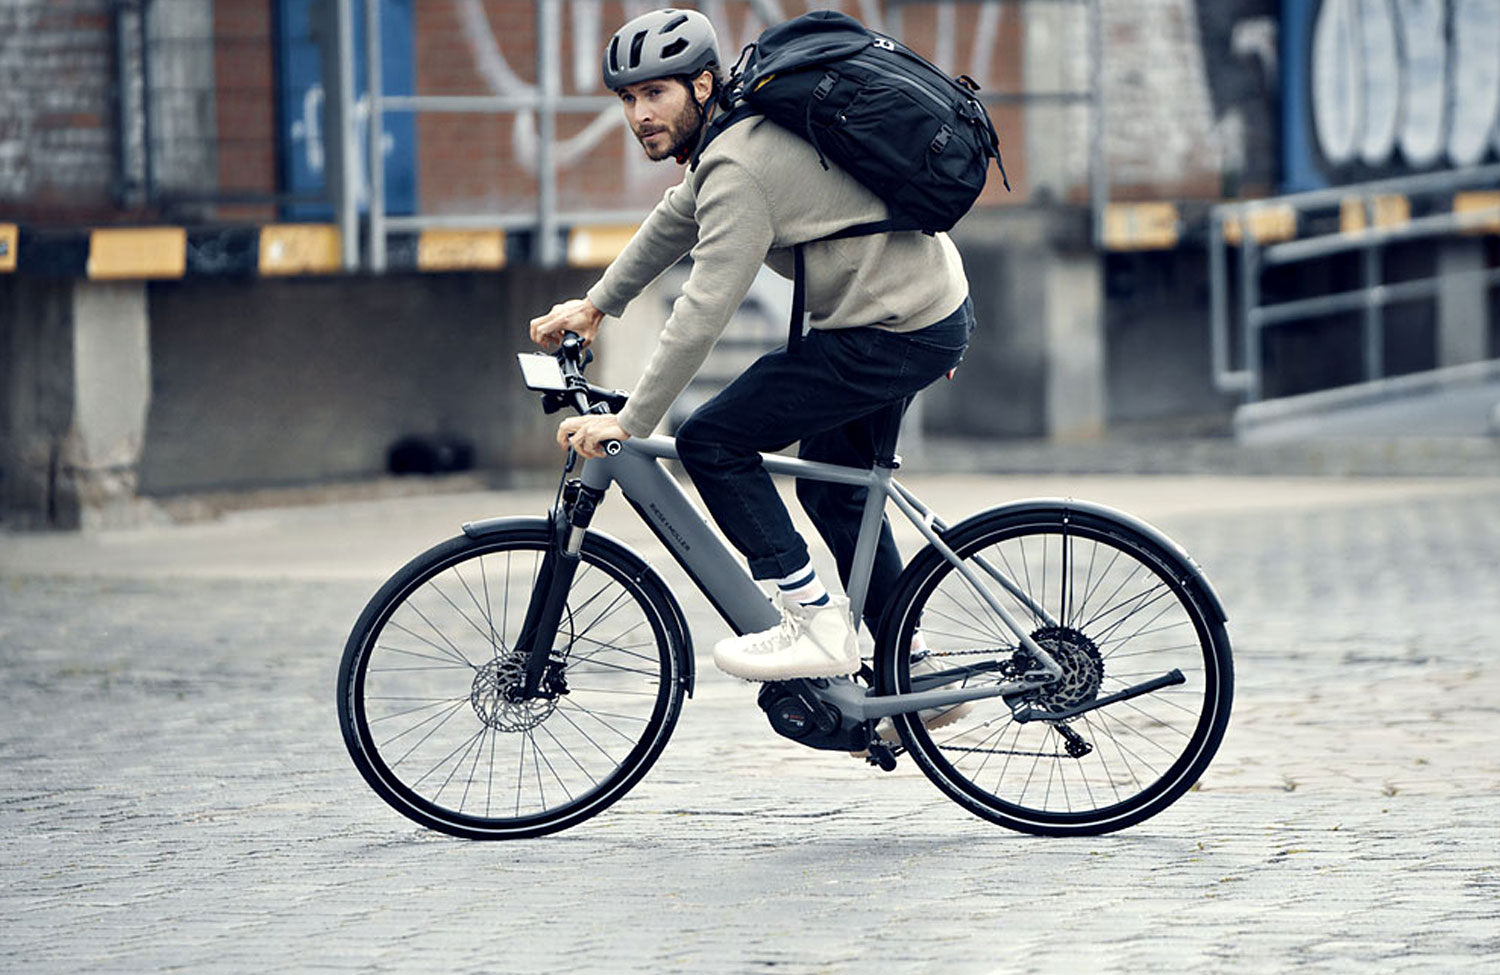 Riese & Müller Roadster: Versatile urban bike with a comprehensive redesign